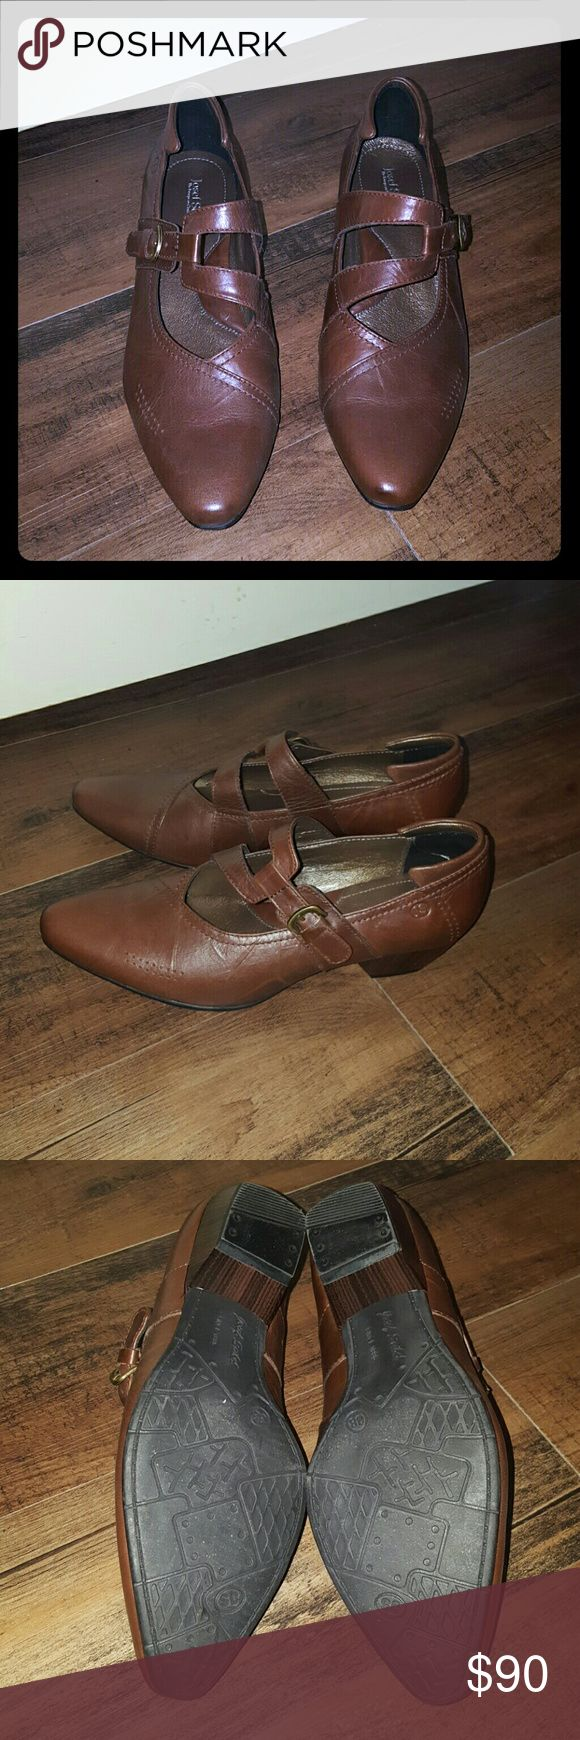 New Josef Seibel shoes Brown size 38 Josef Seibel dress shoes. Never worn. Nwob. I found this shoe to be so comfortable that I bought it in black and brown but only ever reach for the black so it's time for someone else's feet to enjoy these lovely shoes. Josef Seibel Shoes